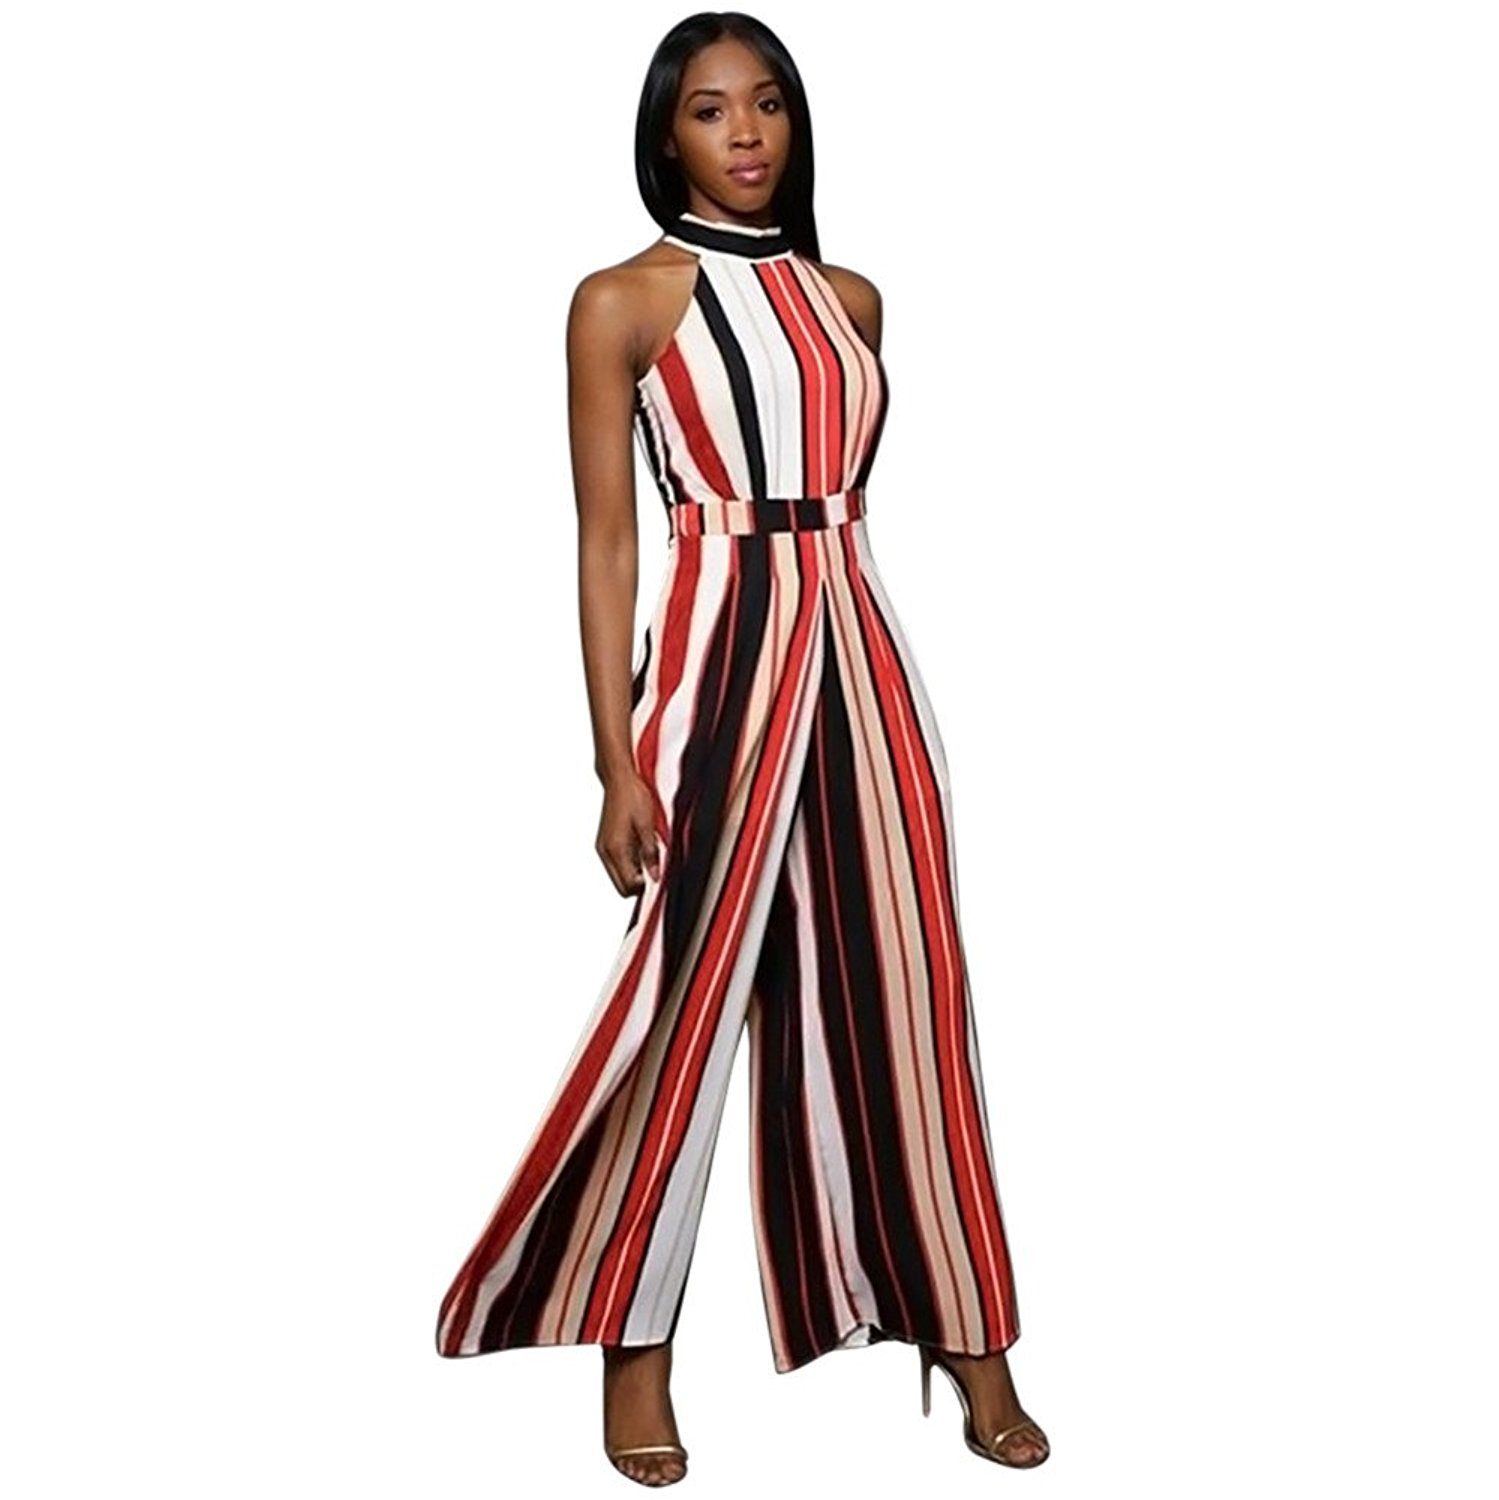 7f6b0d64d58 Get Quotations · COOKI Rompers and Jumpsuits for Women Ladies Elegant  Striped High Waist Wide Leg Long Pants Jumpsuits